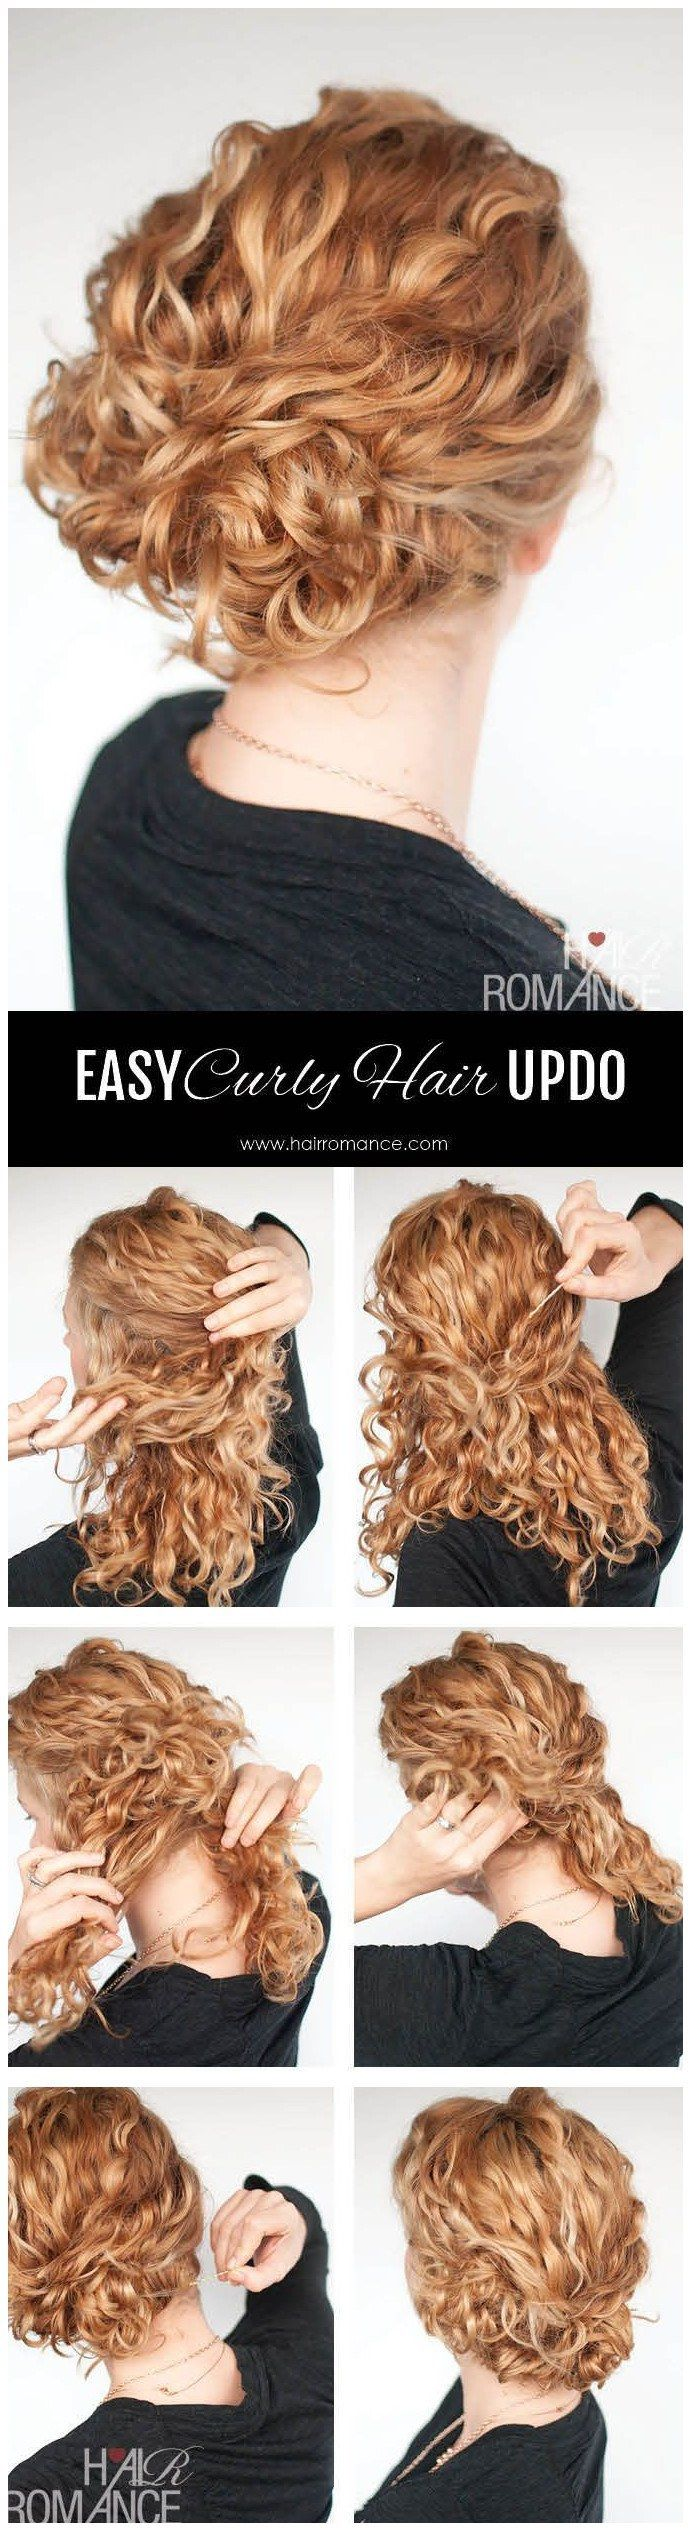 Hairstyle Tutorial Easy Twist And Pin Updo For Curly Hair Hair Romance Curly Hair Styles Naturally Curly Hair Styles Hair Tutorial